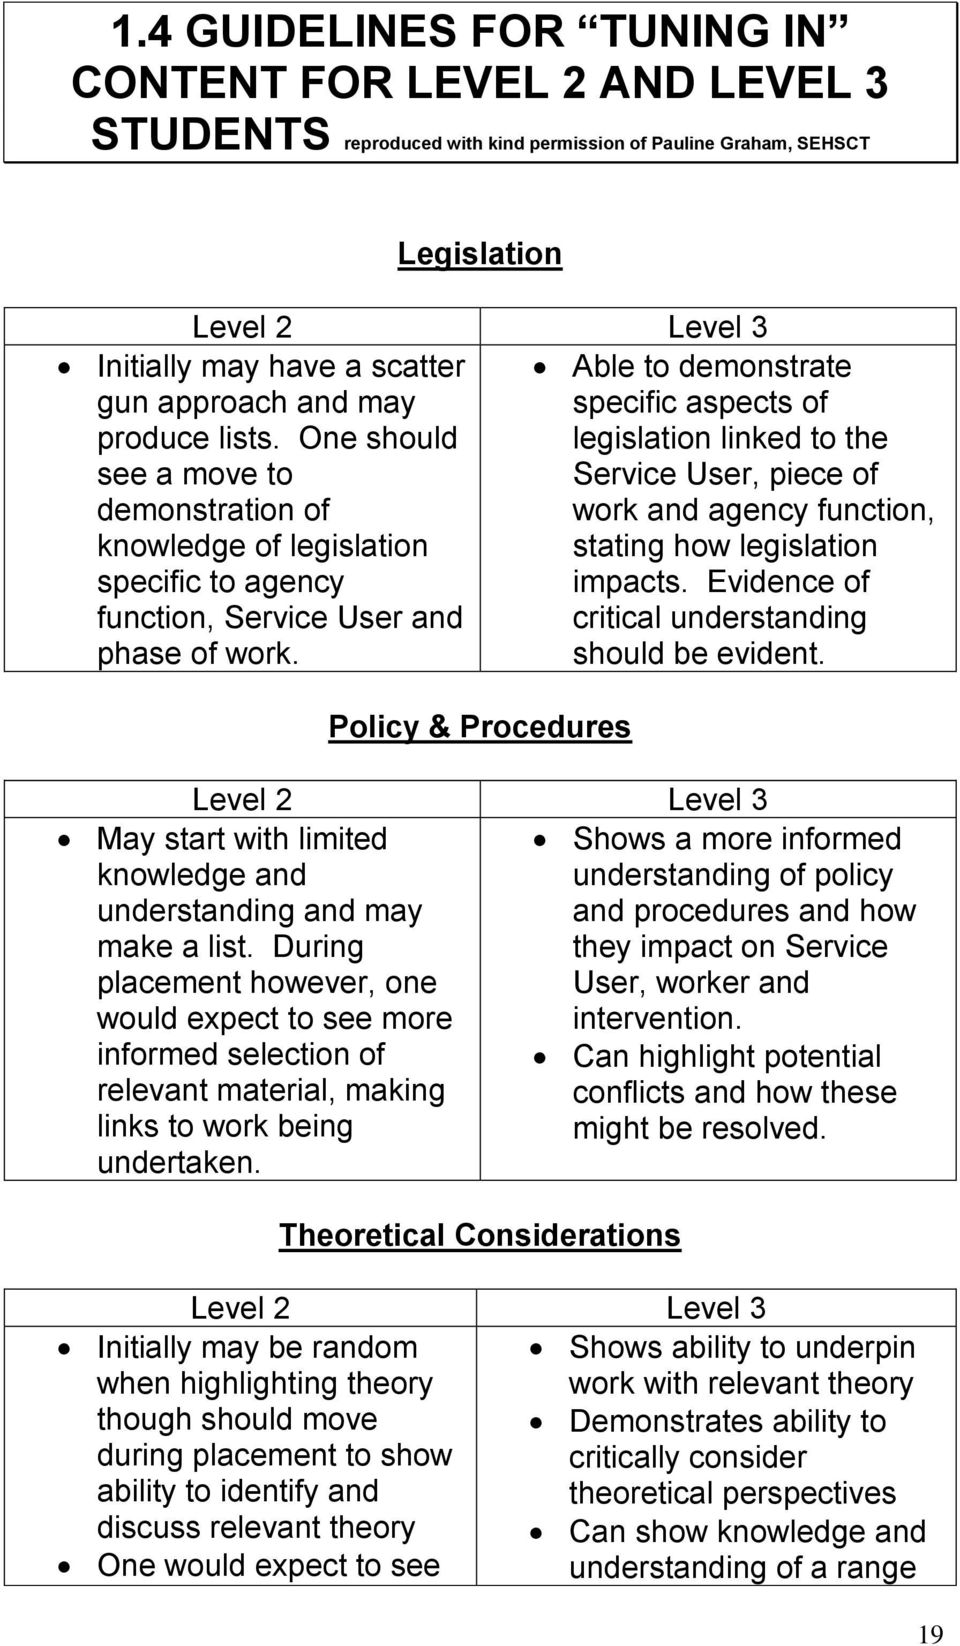 Policy & Procedures Able to demonstrate specific aspects of legislation linked to the Service User, piece of work and agency function, stating how legislation impacts.